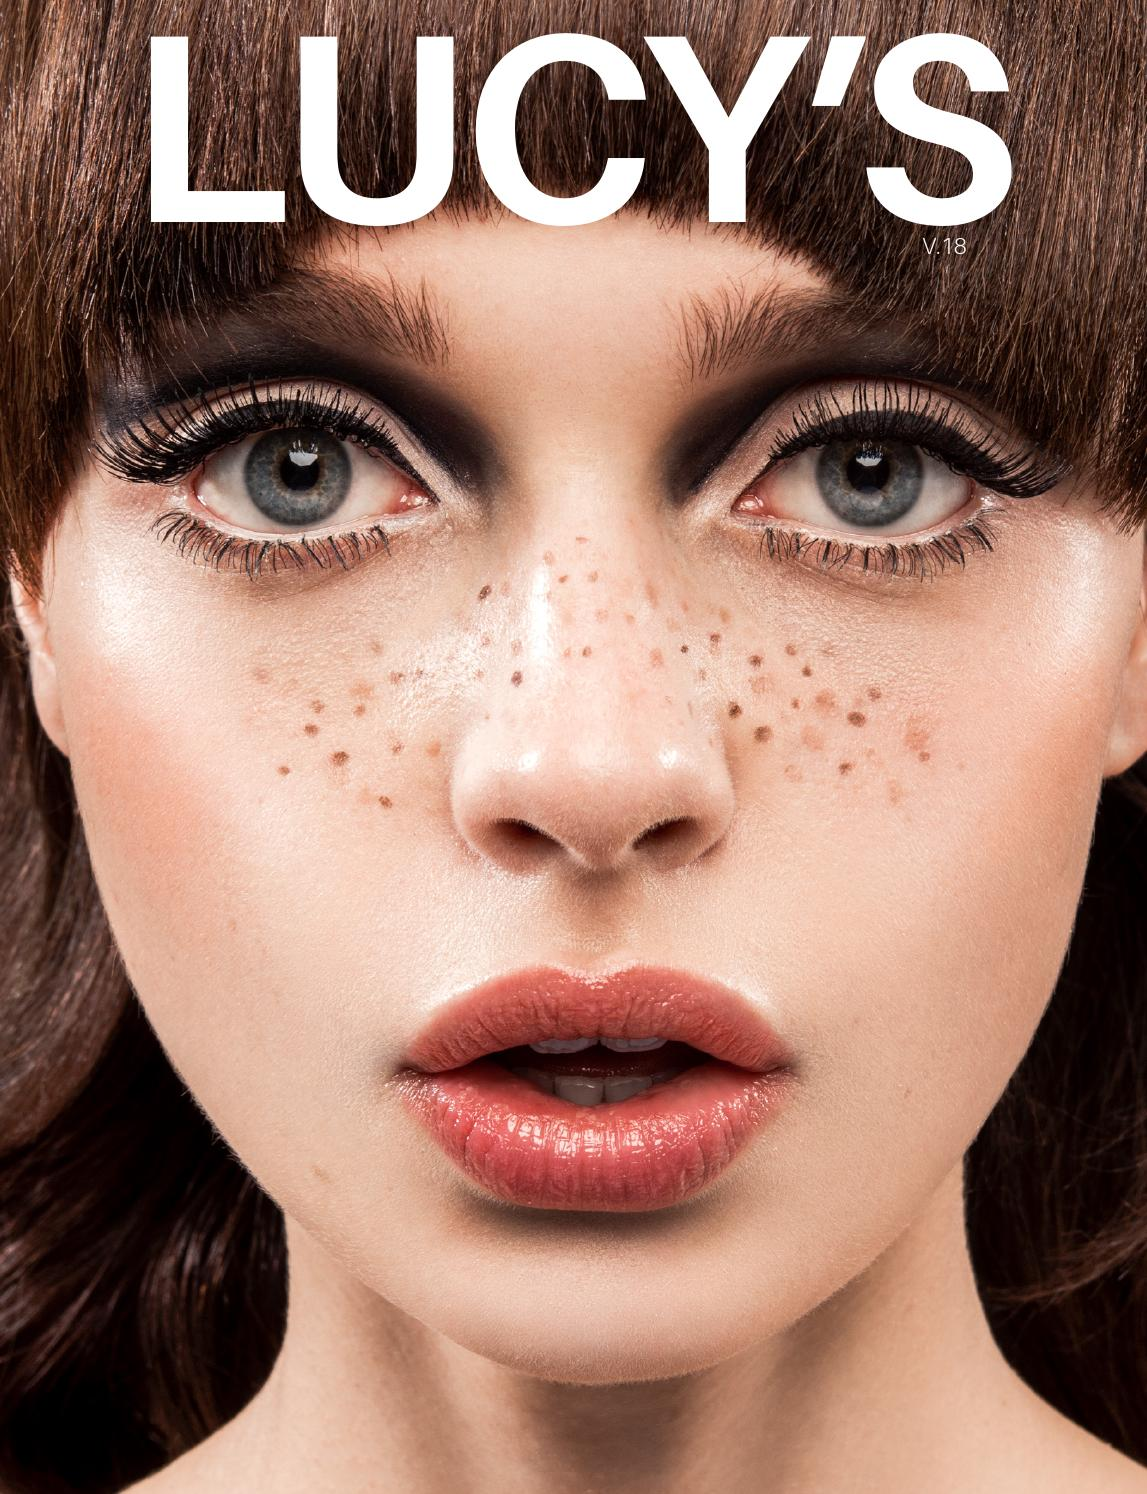 lucy u0026 39 s vol  18 by lucy u0026 39 s magazine